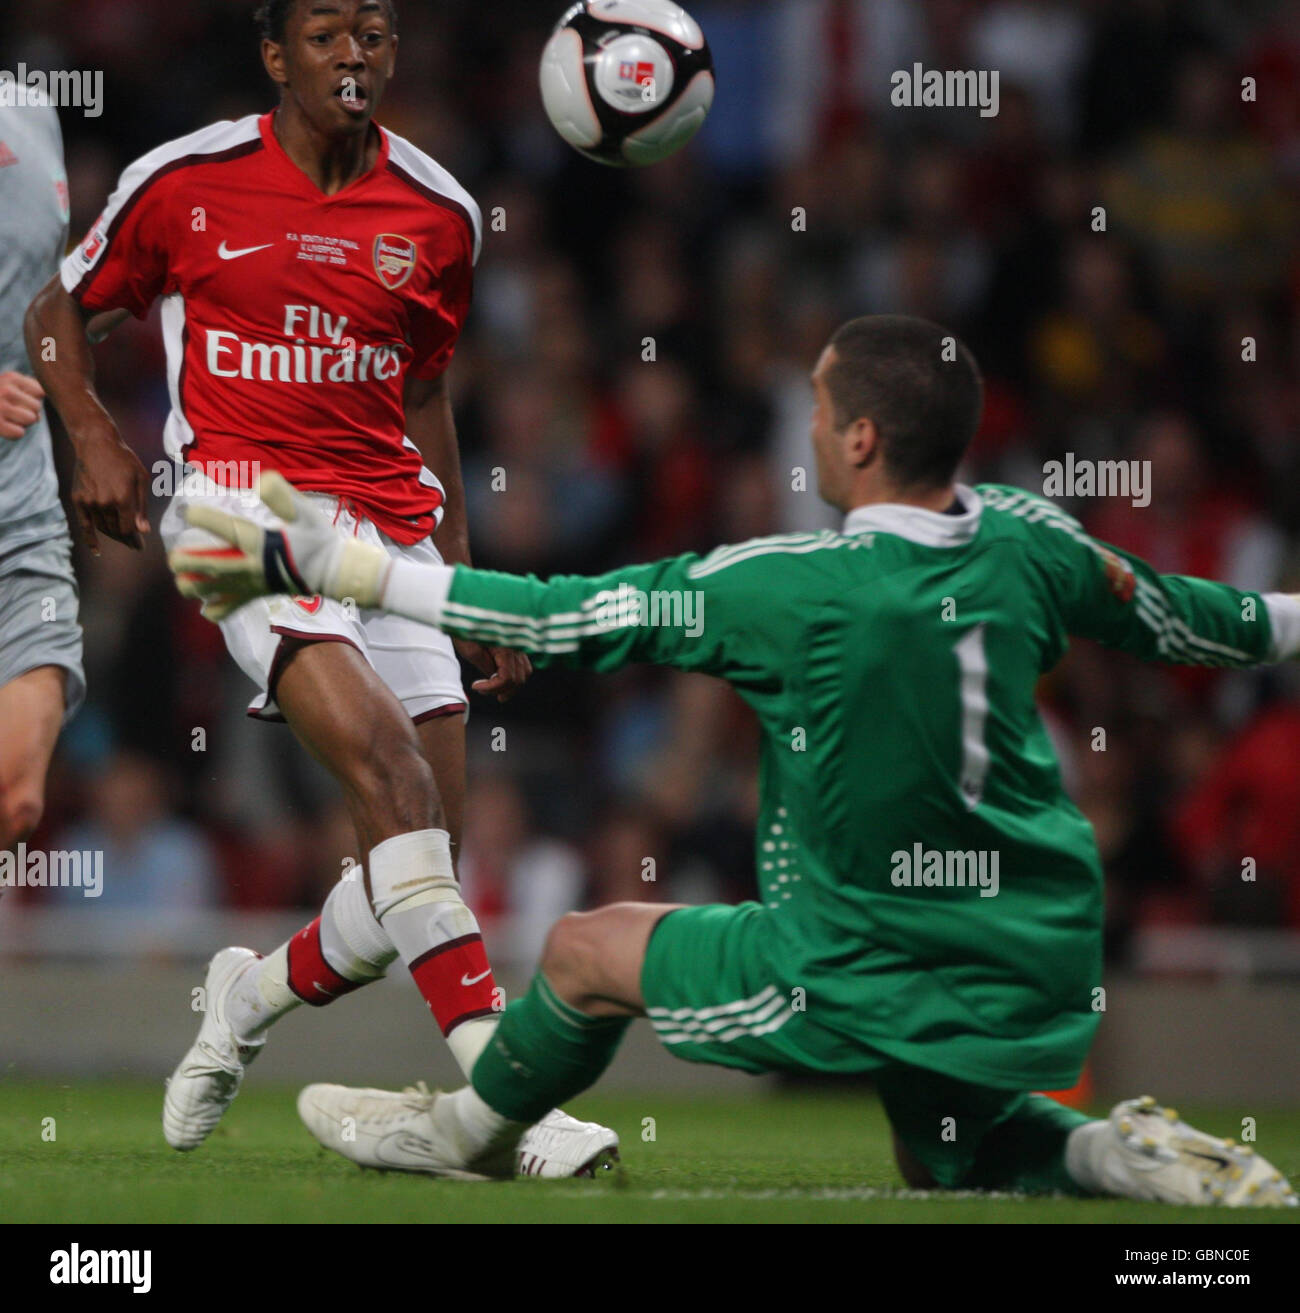 Soccer - FA Youth Cup Final - First Leg - Arsenal v Liverpool - Emirates Stadium - Stock Image